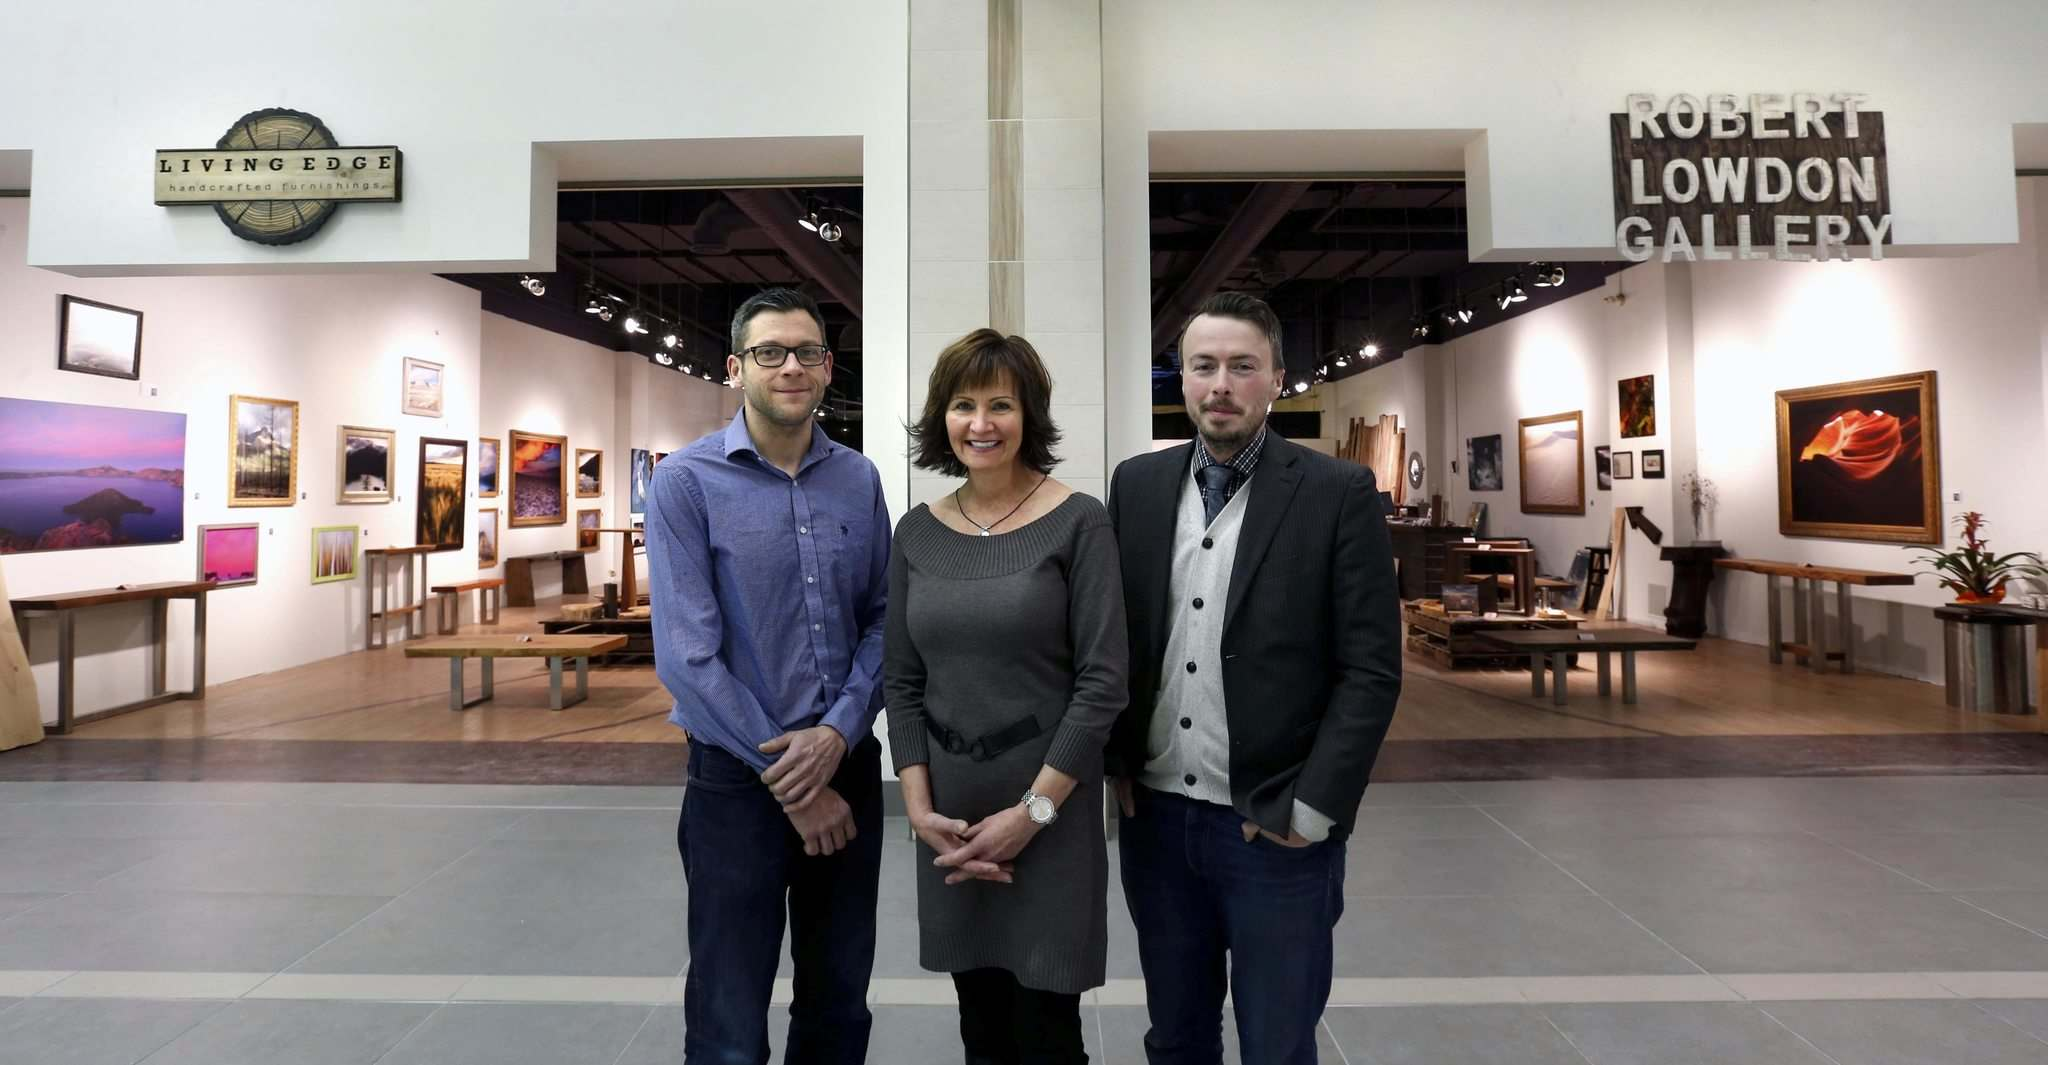 WAYNE GLOWACKI / WINNIPEG FREE PRESS</p><p>Cheryl Roney, director of leasing for Triovest, with Robert Lowdon (right), owner of Robert Lowdon Gallery and Ryan Henderson, owner of Living Edge Furnishings, in front of their shared space on the main floor at Cityplace 333 St. Mary Ave. at Hargrave. </p>